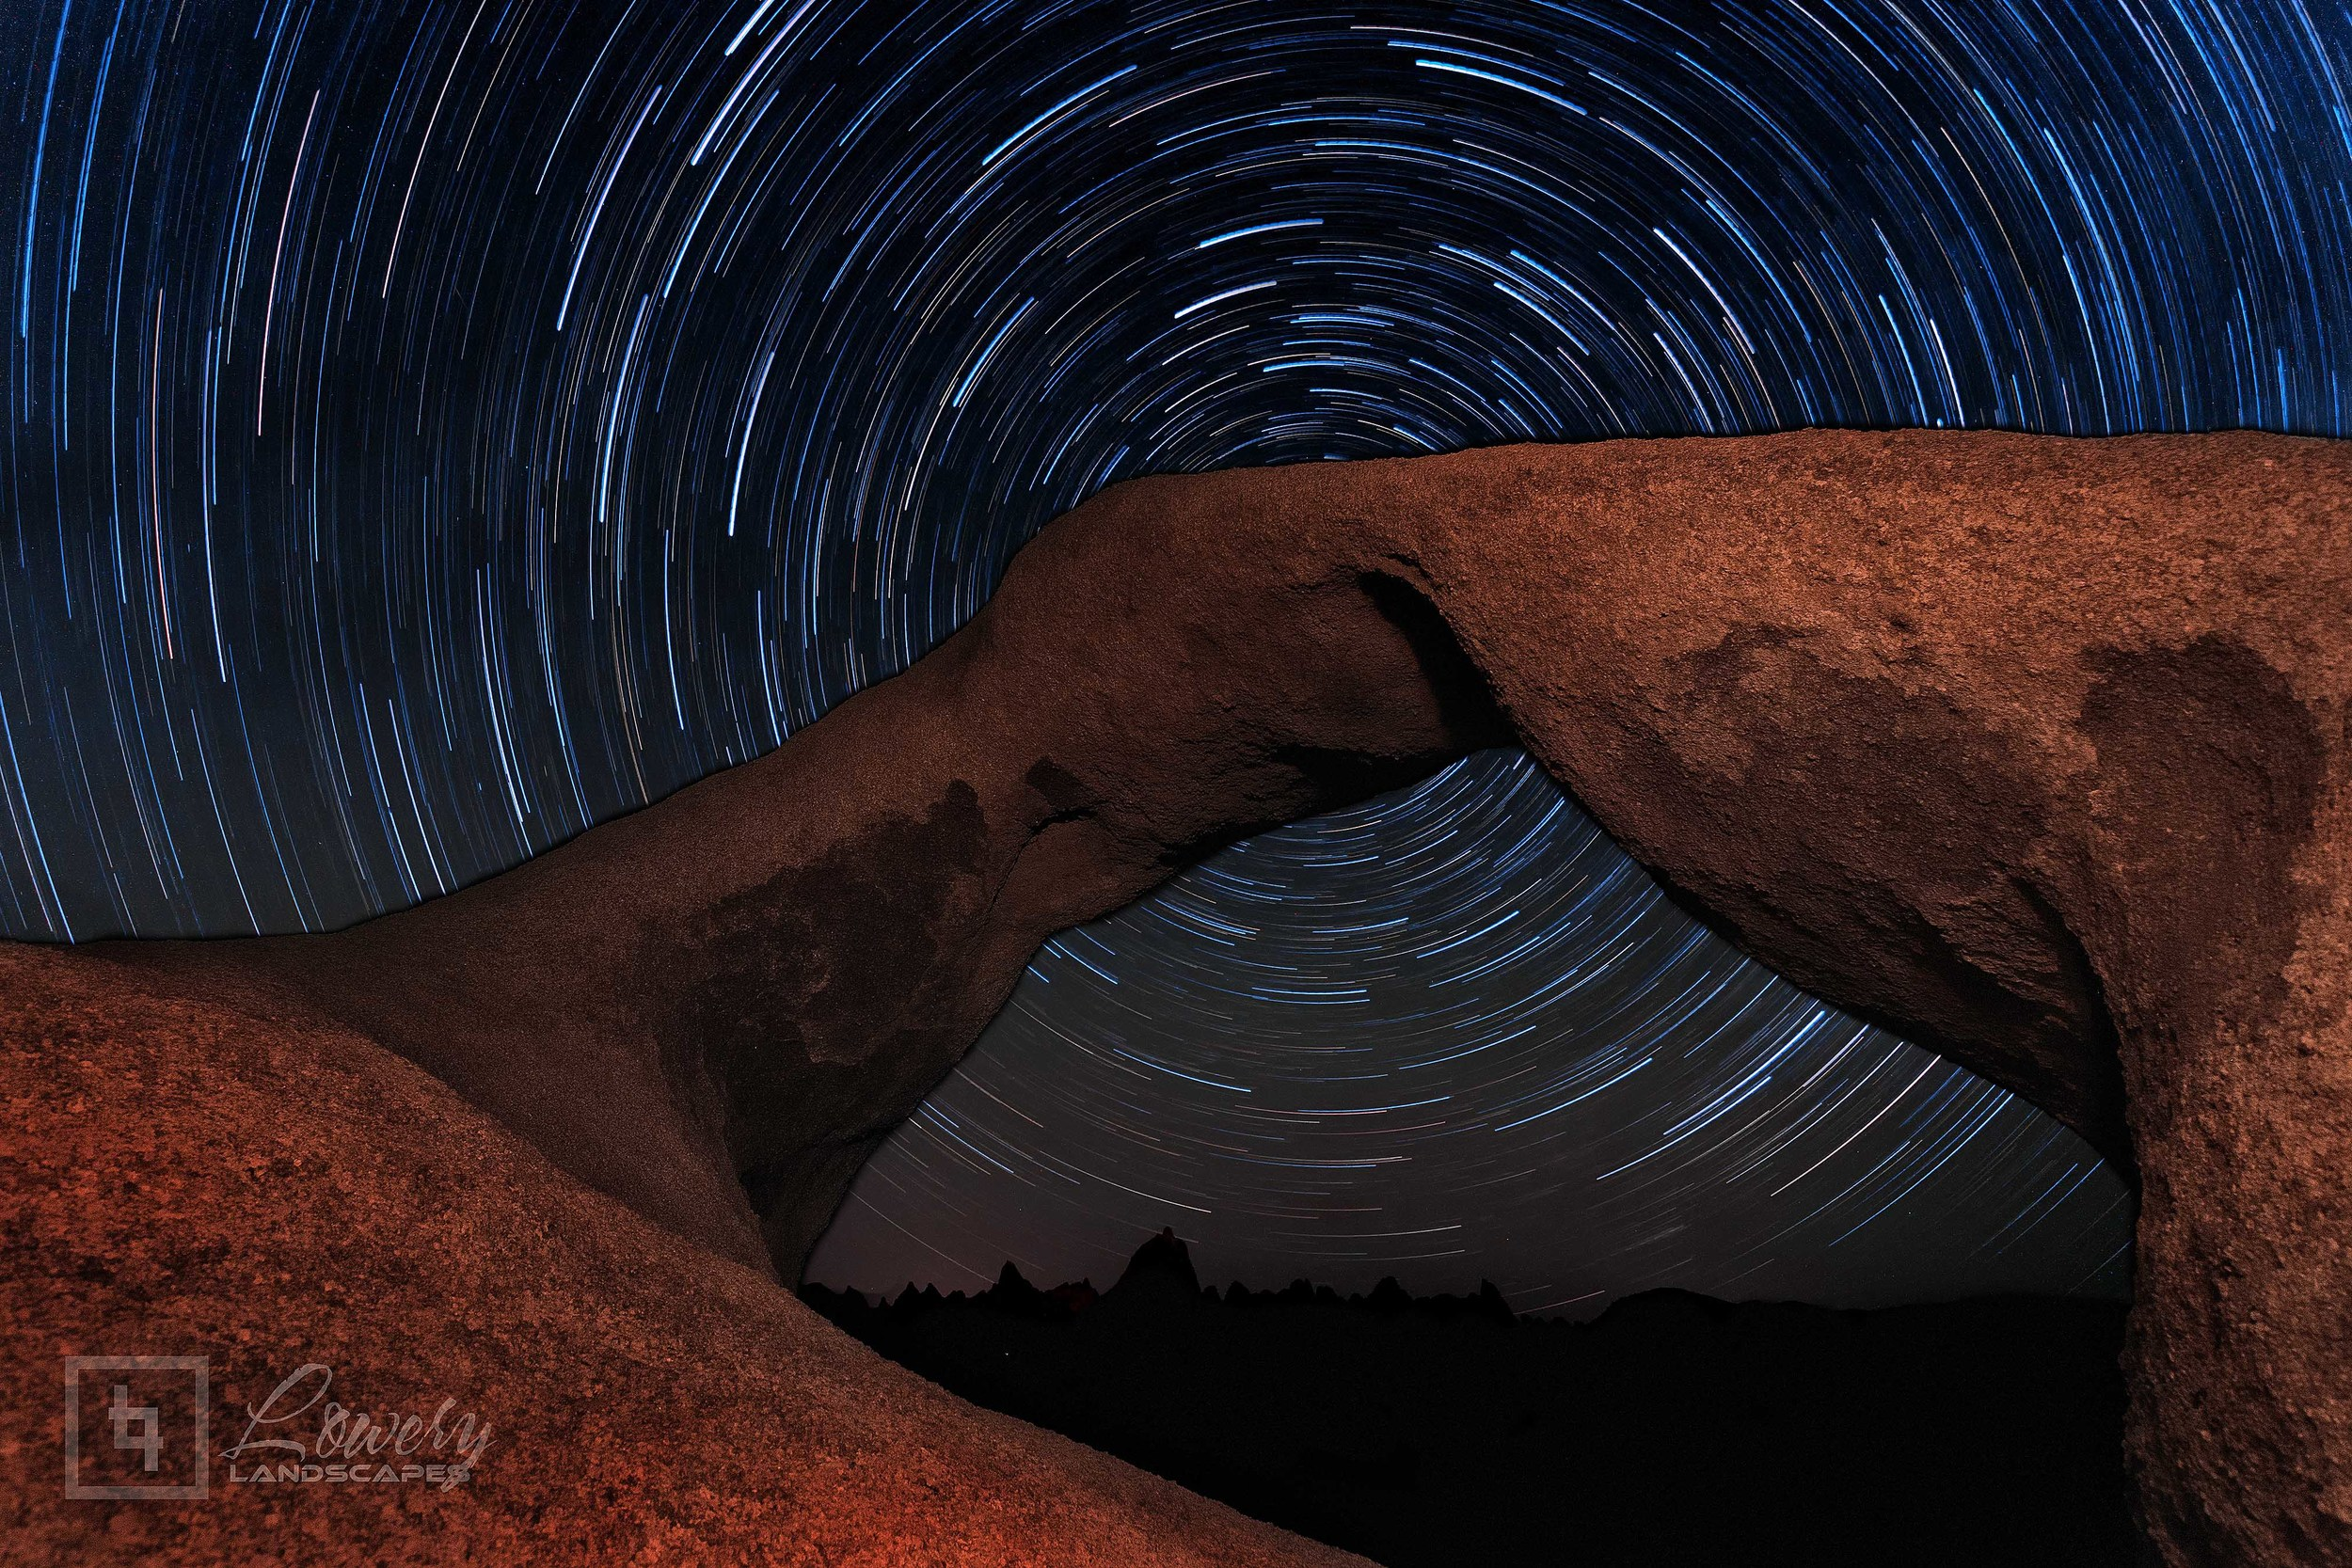 The Earth's rotation around the North Star, Polaris, streaks the night sky into a spiral of light and color, with the light painted Mobius Arch in the foreground in this 71 minute blend of 16 sequential long exposures.